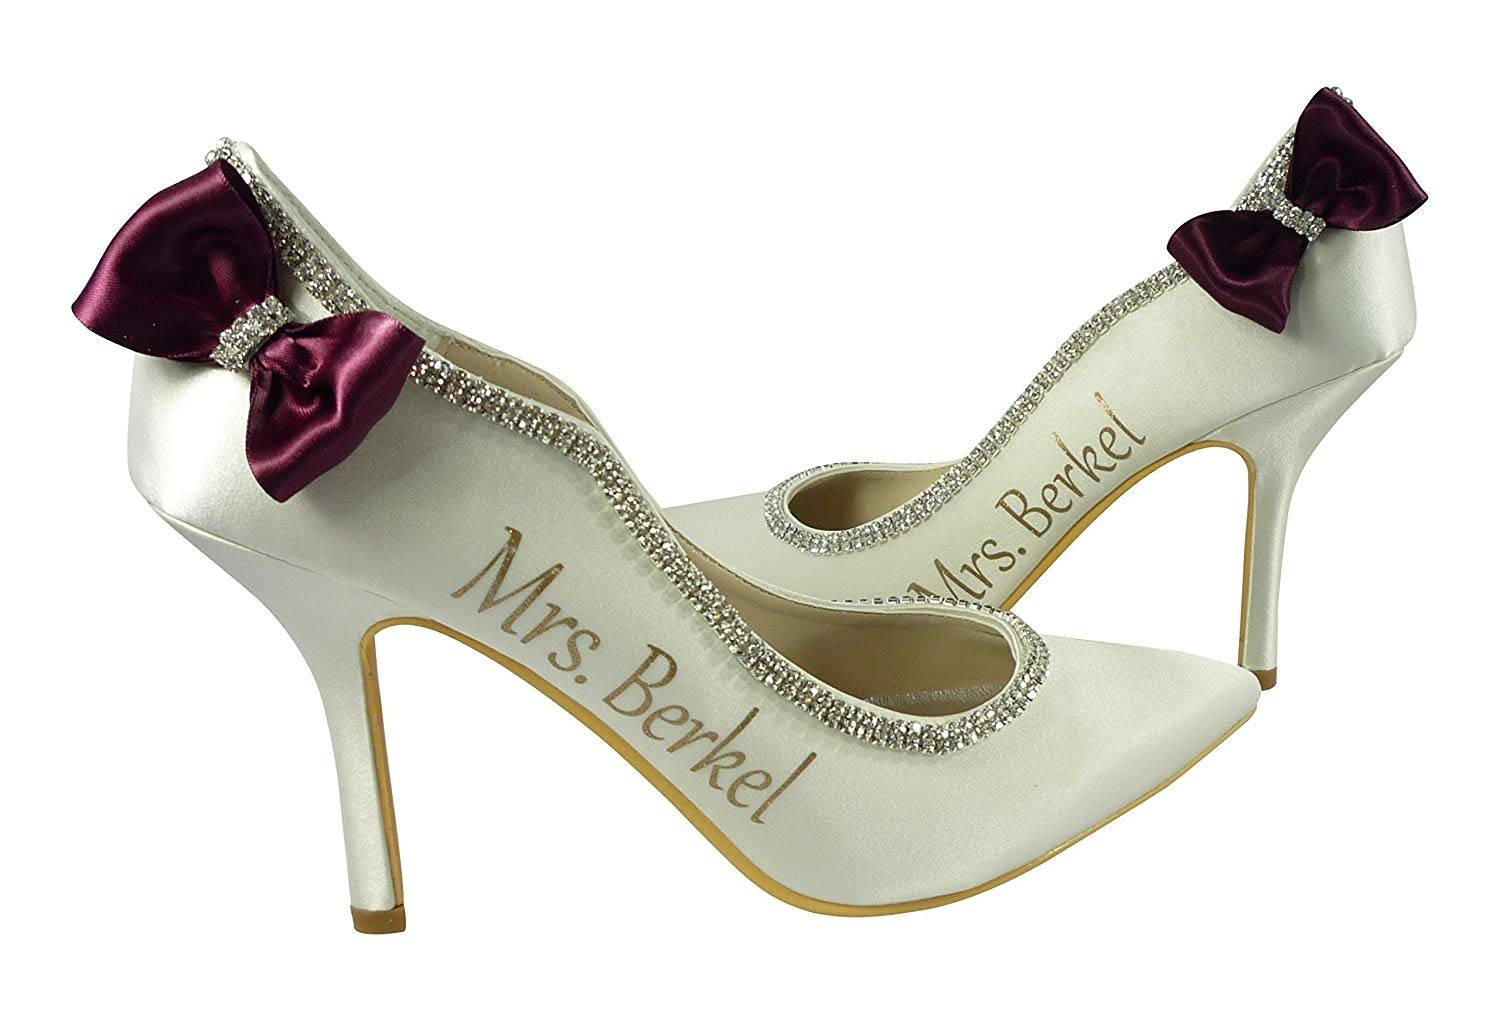 fb9e61acda0 Cheap 3 Inch Bridal Shoes, find 3 Inch Bridal Shoes deals on line at ...